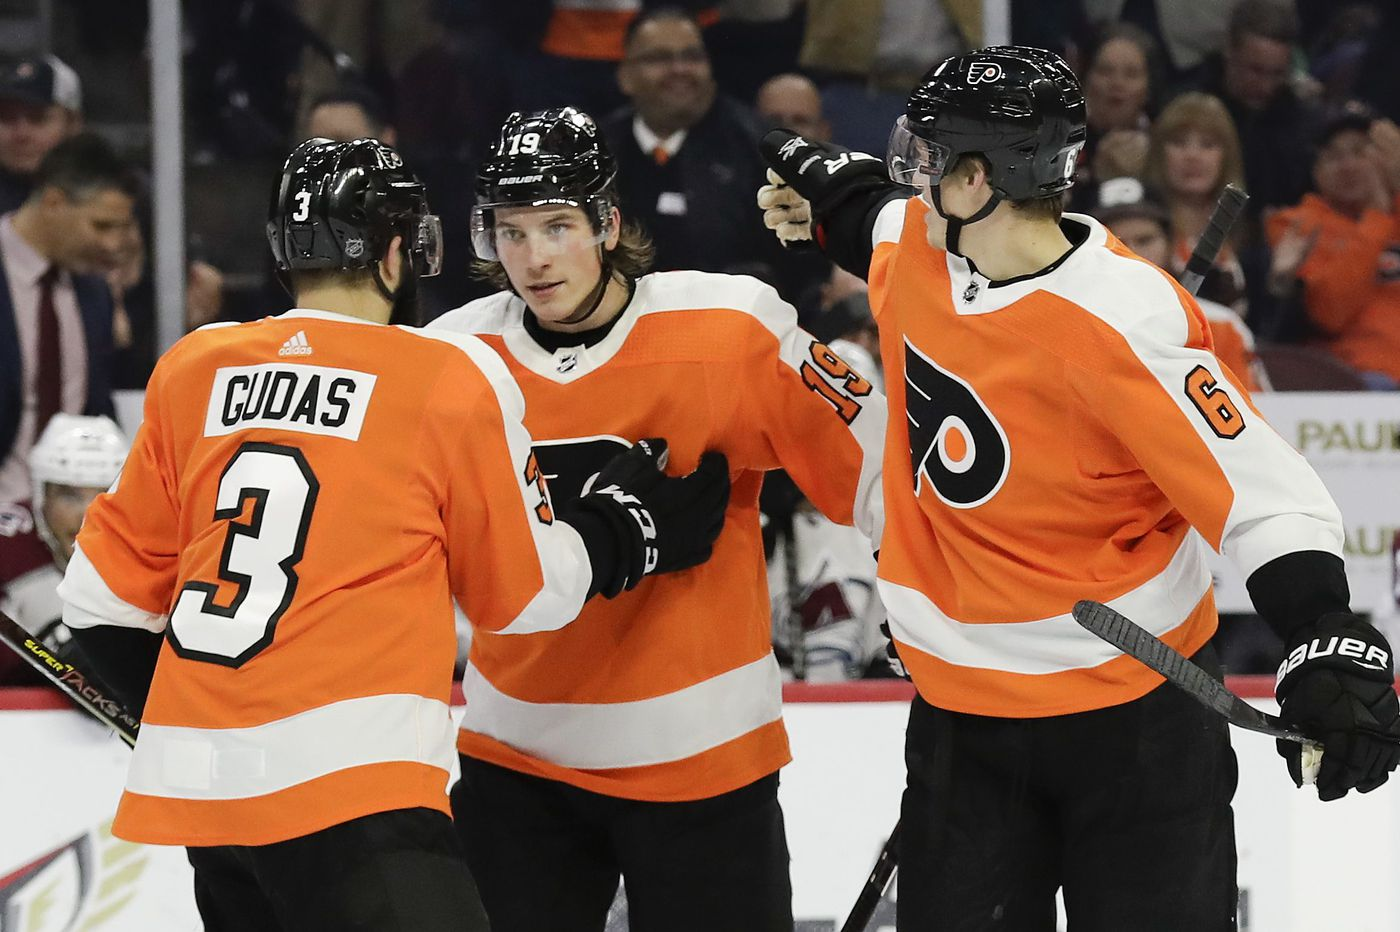 As Flyers again meet Coyotes, look for emotions to spill over